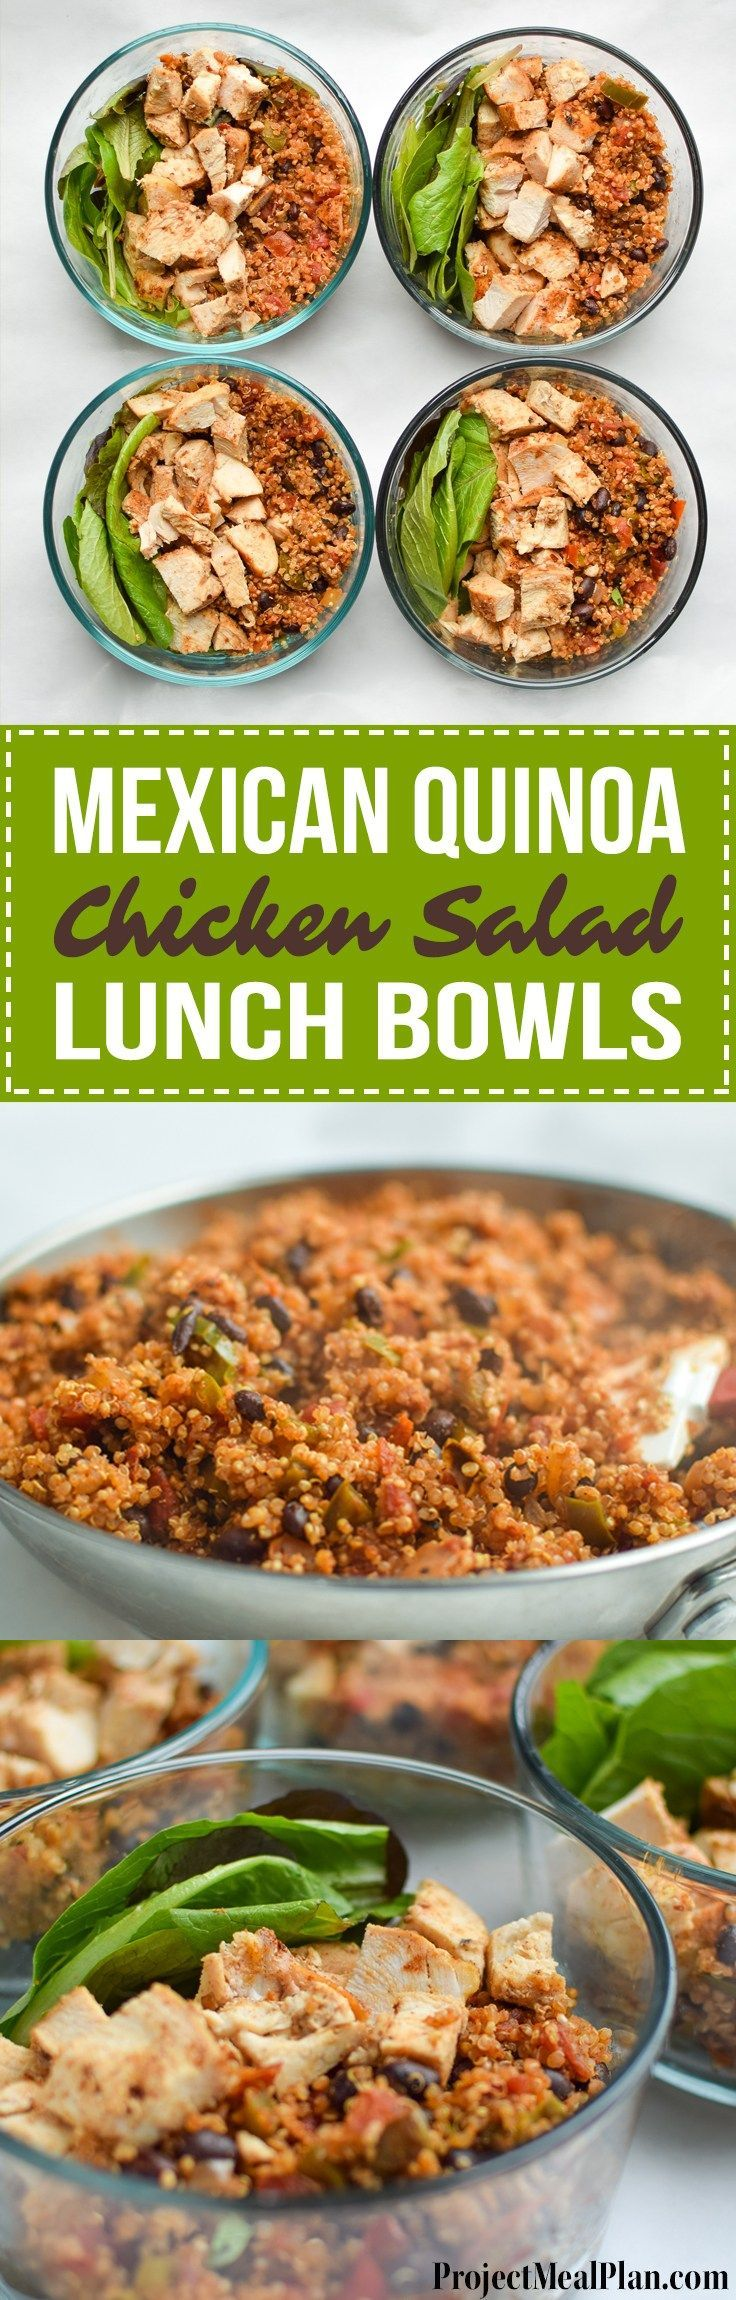 Mexican Quinoa Chicken Salad Lunch Bowls - My meal prep this week consisting of mexi quinoa and baked chicken breast over greens! - http://ProjectMealPlan.com